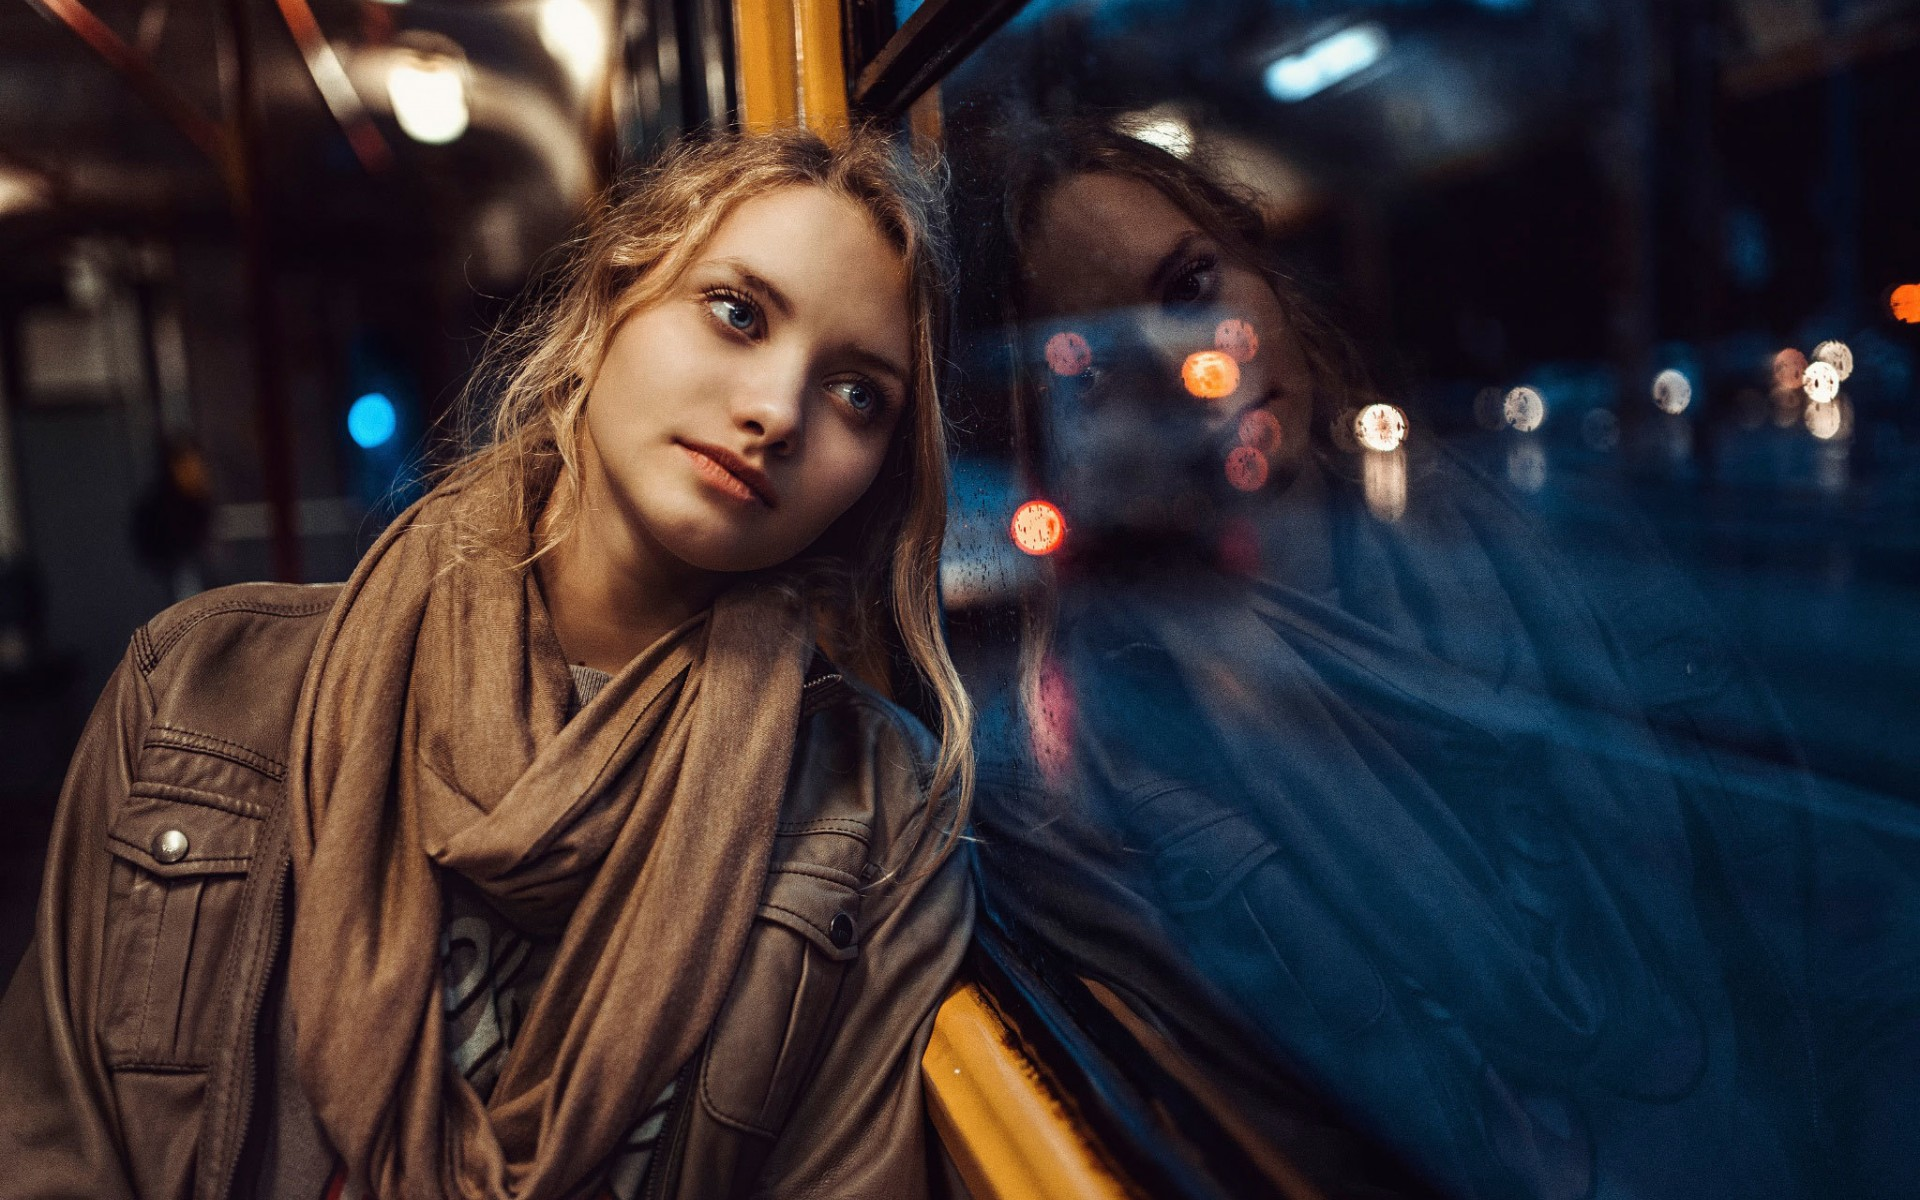 Girl leaning against bus window